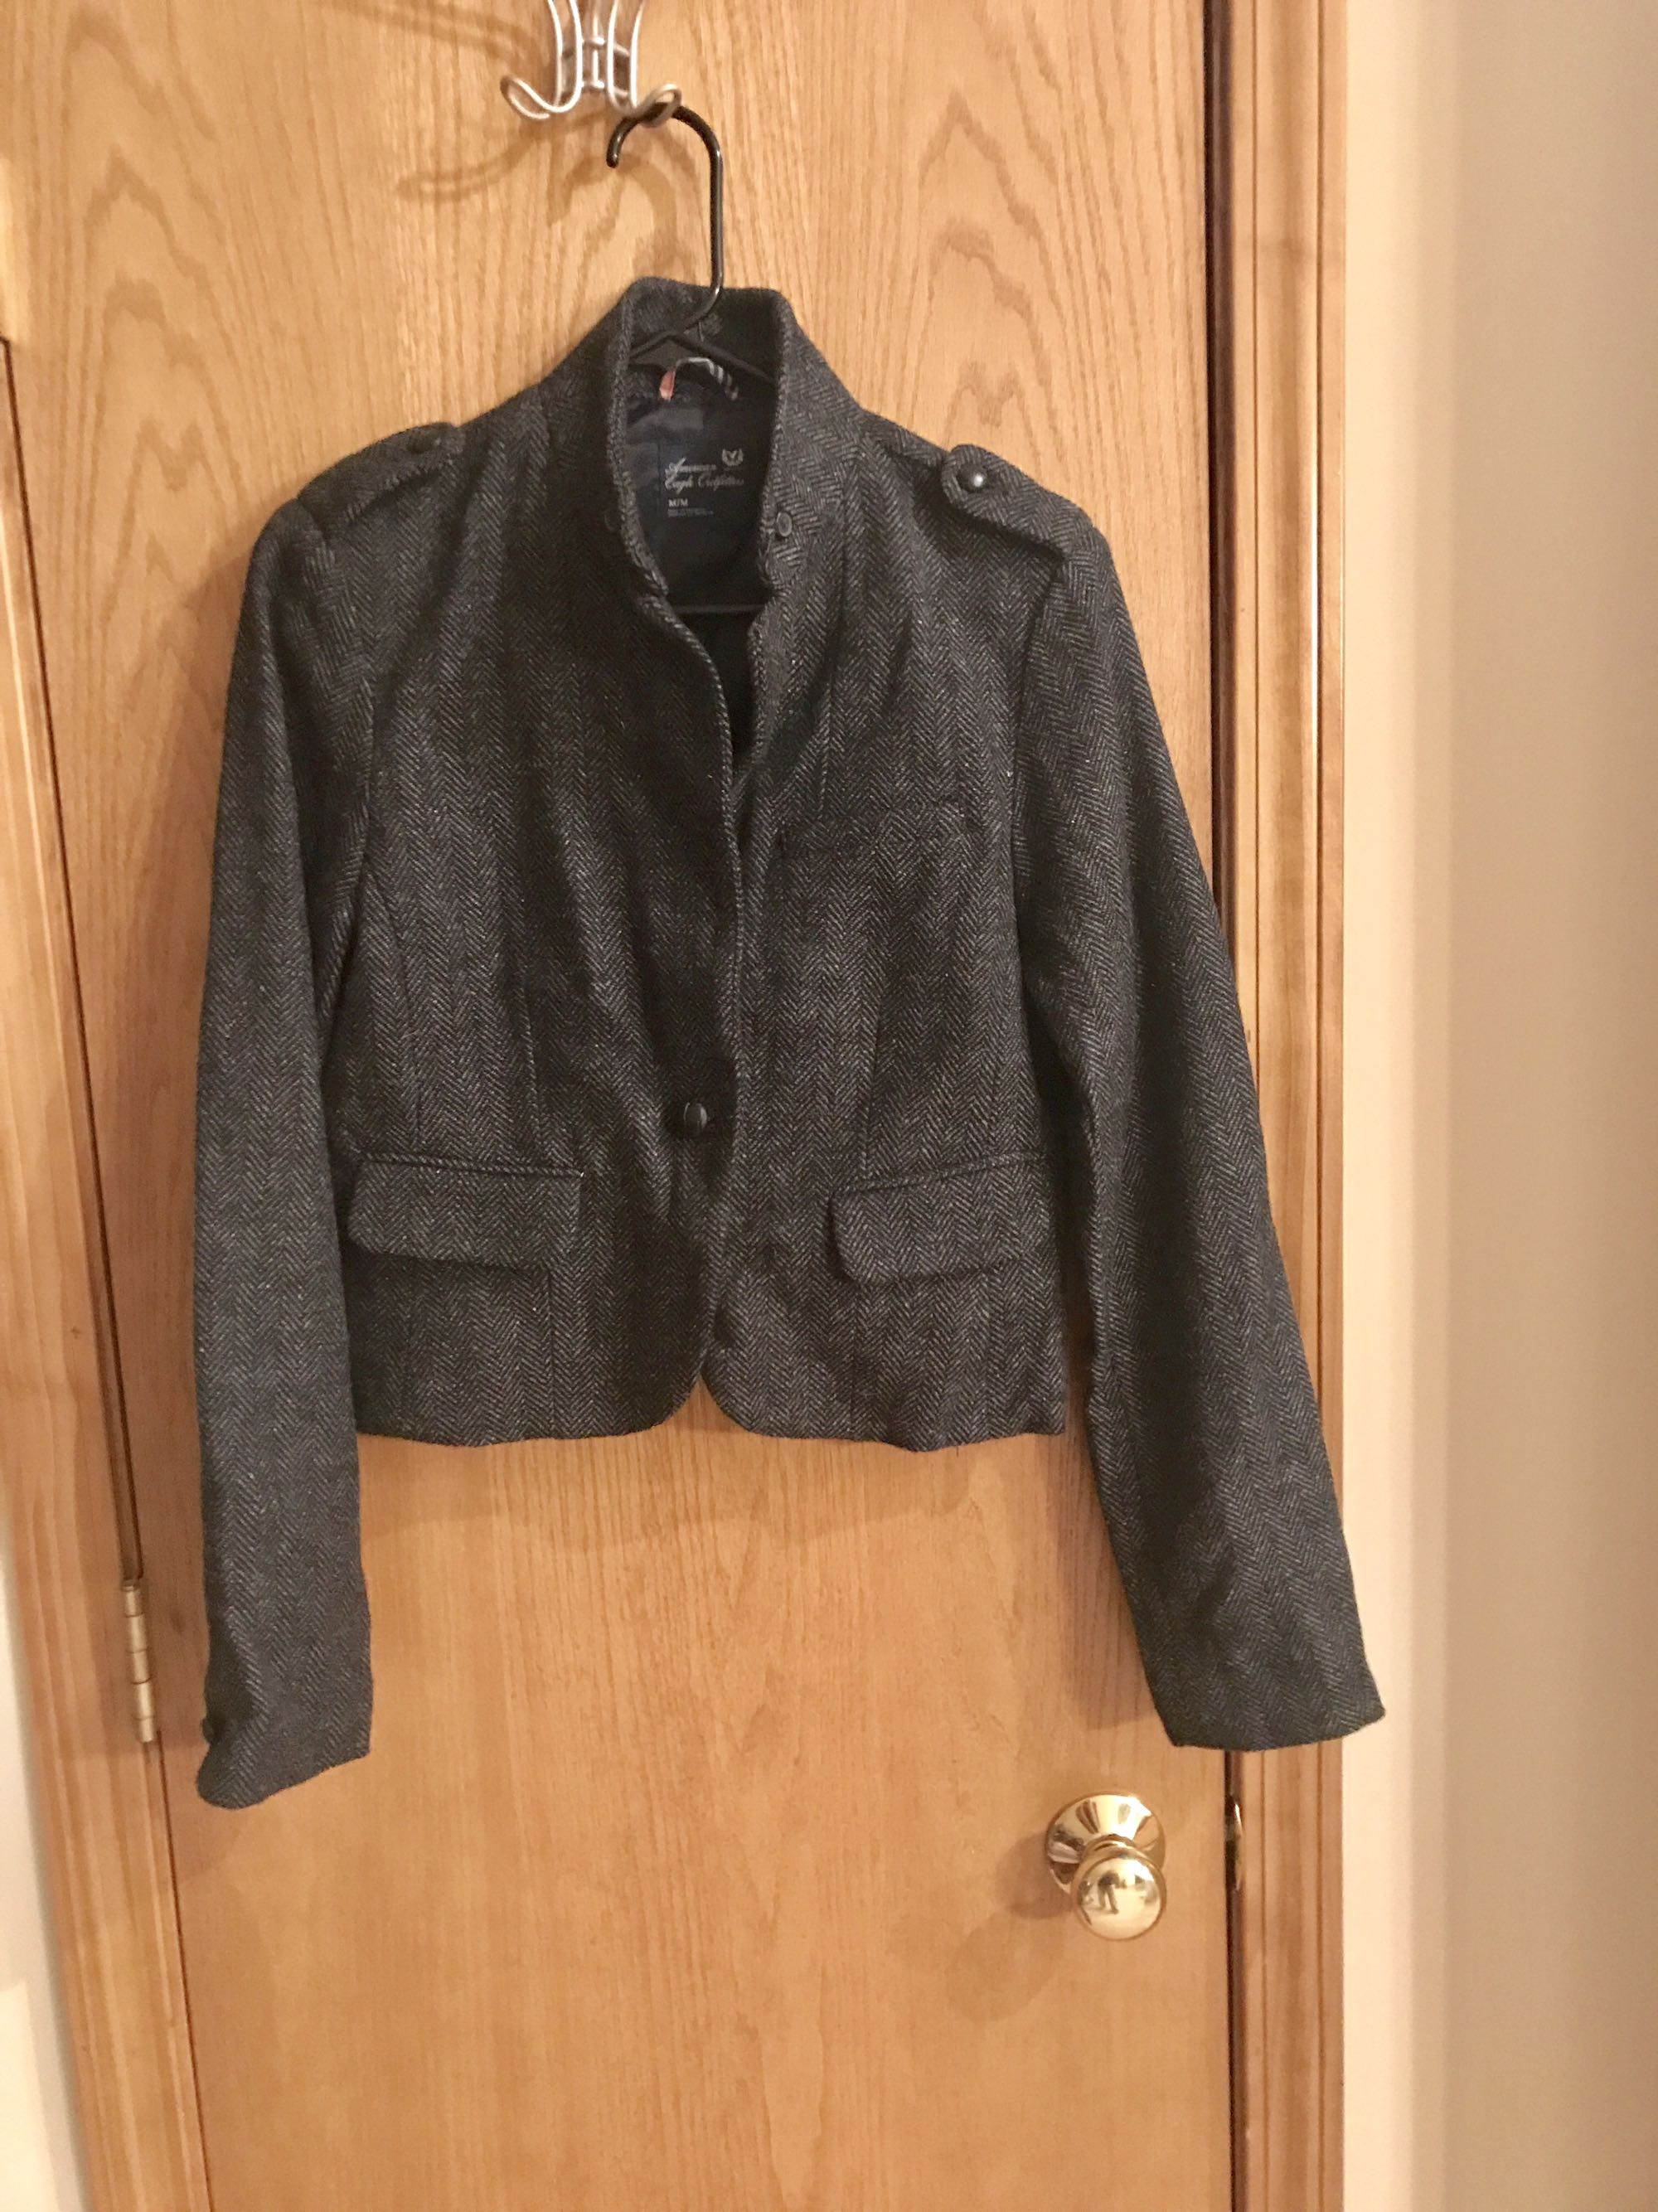 American Eagle gray jacket, medium, worn once basically new